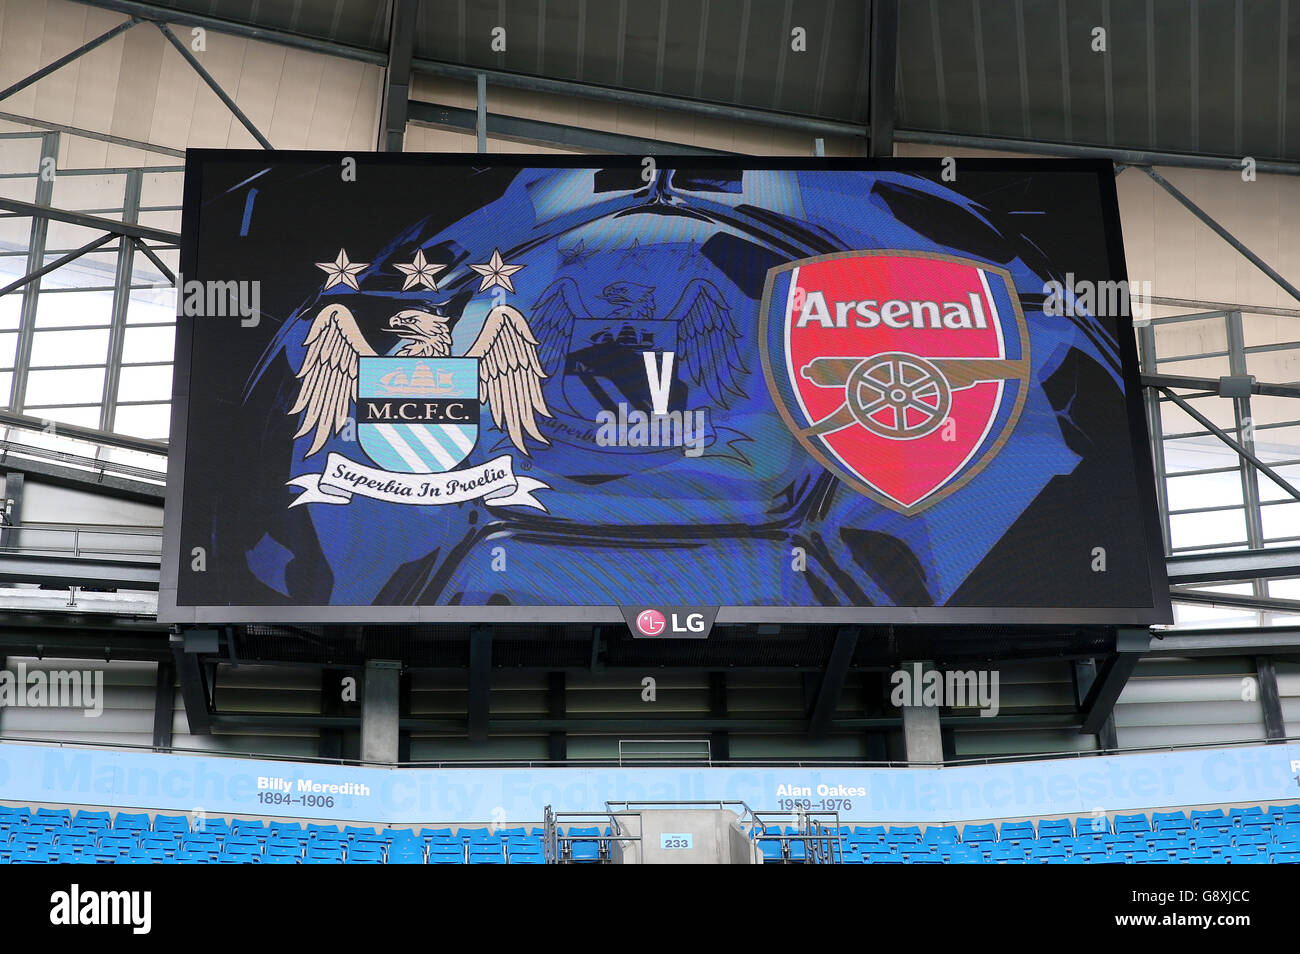 Manchester city led banners